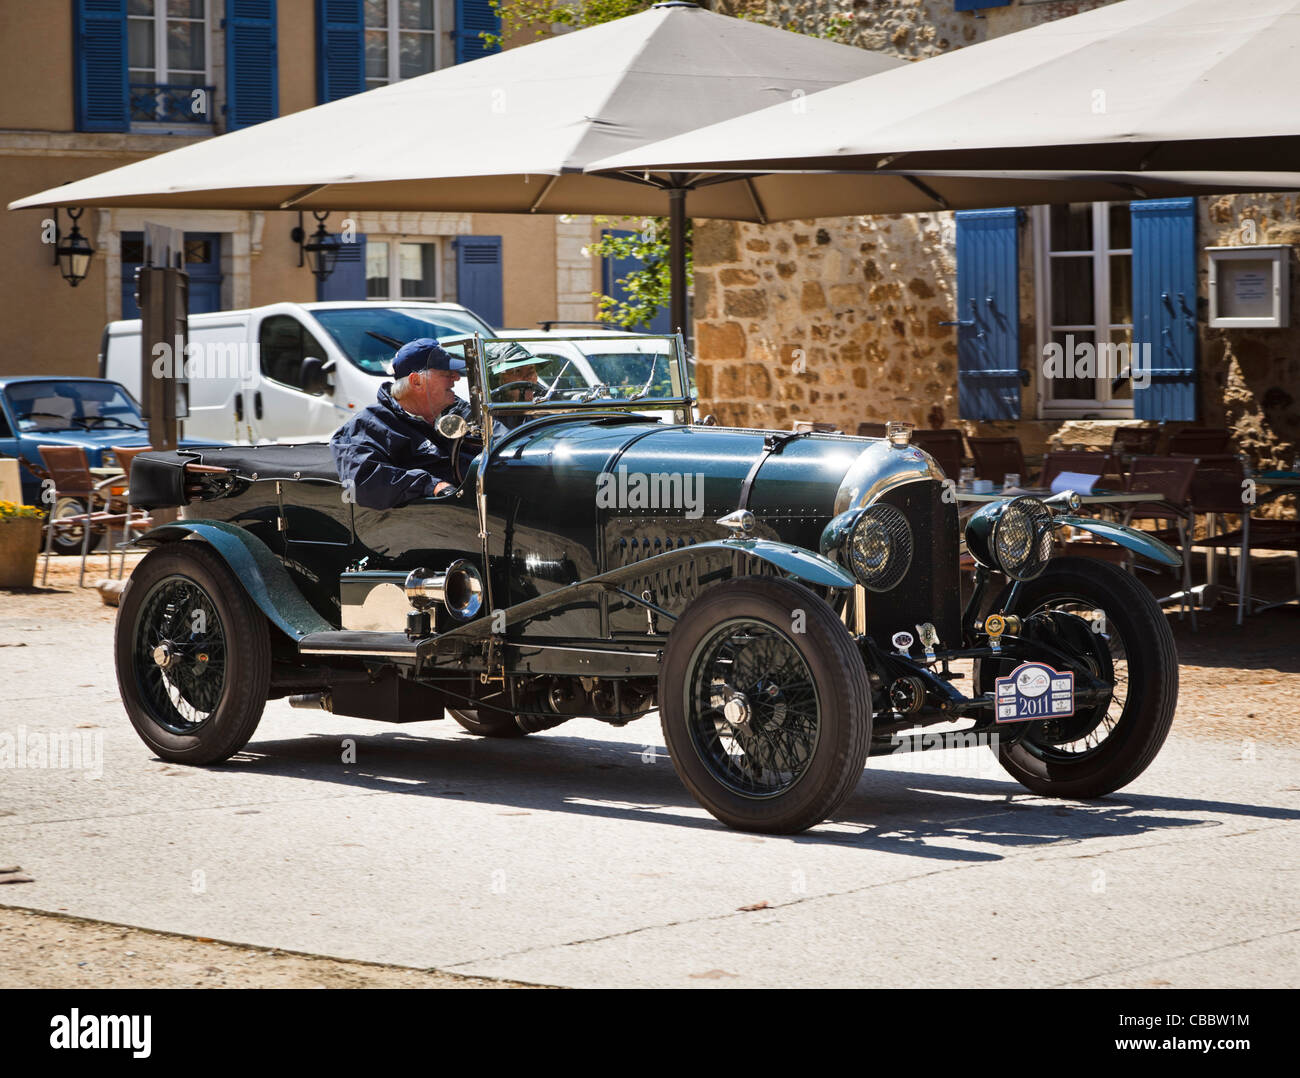 Classic Cars - Vintage Bentley Immagini Stock